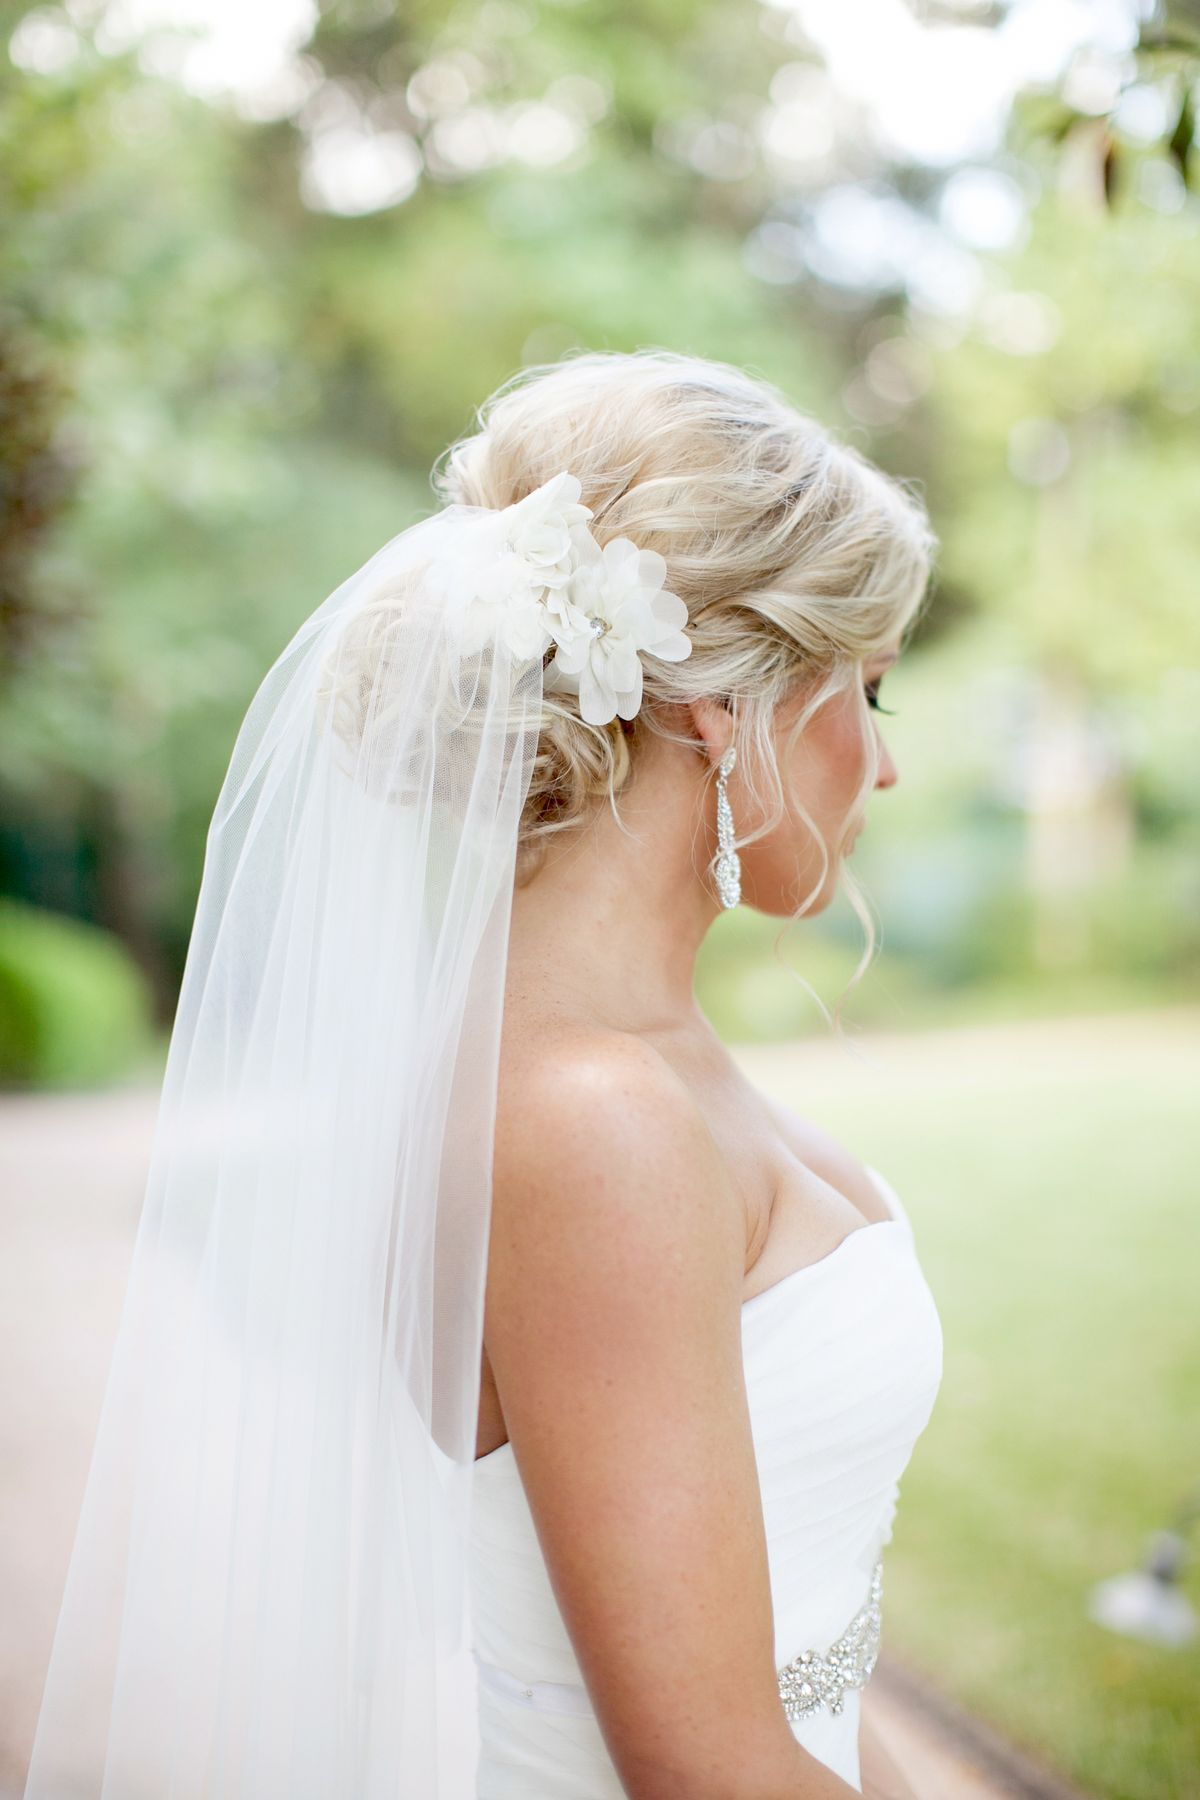 wedding hairstyles with veil best photos - wedding hairstyles